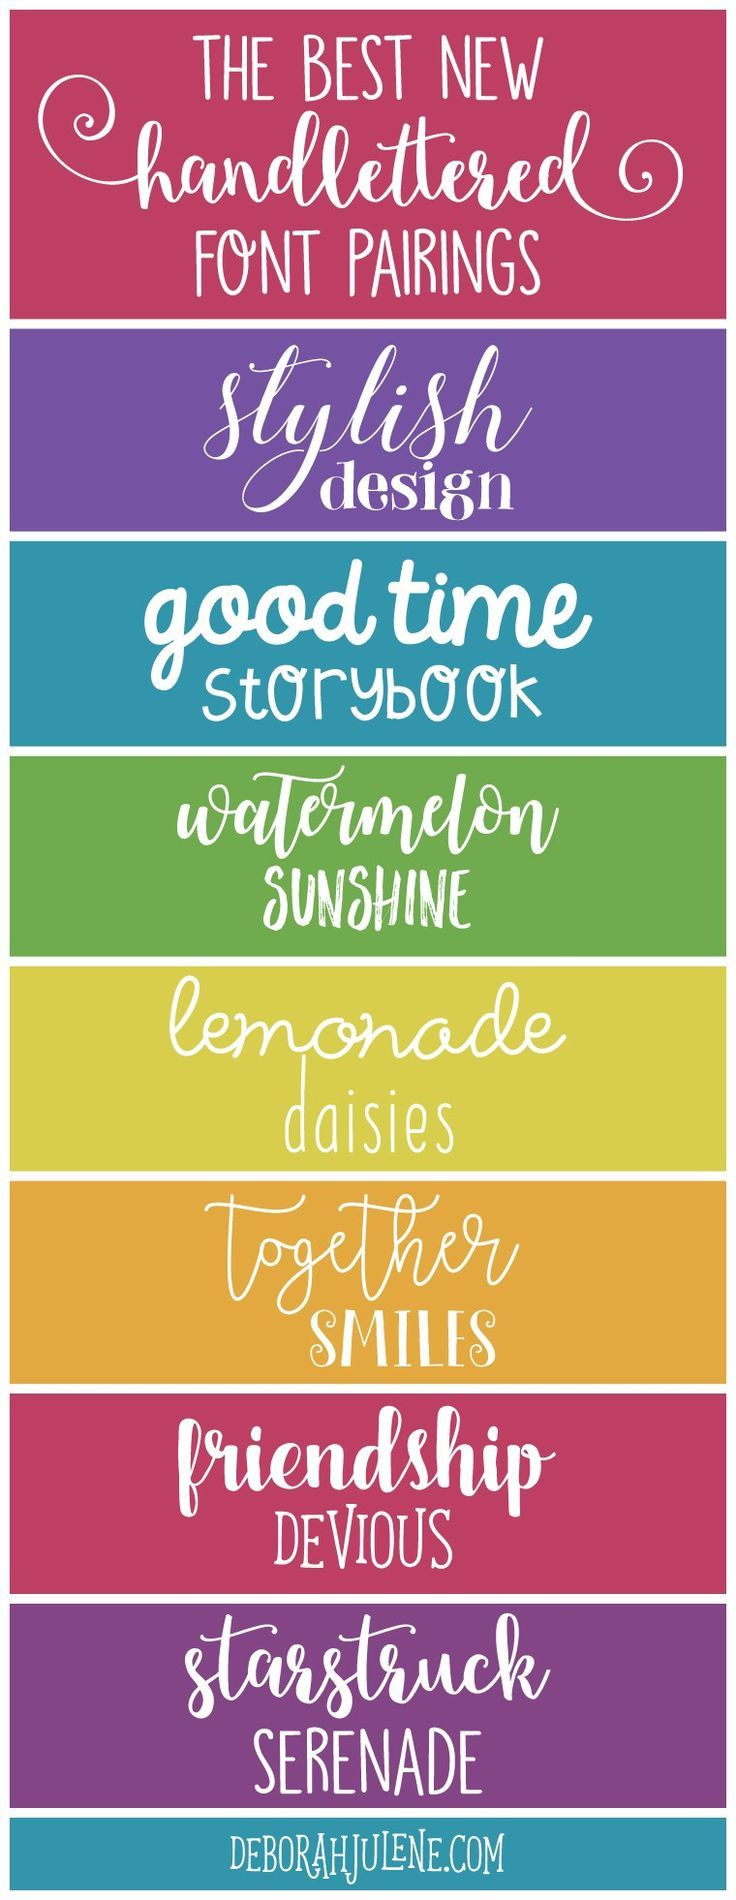 best ideas about font pairings font combinations 7 of the best new handlettered font pairings